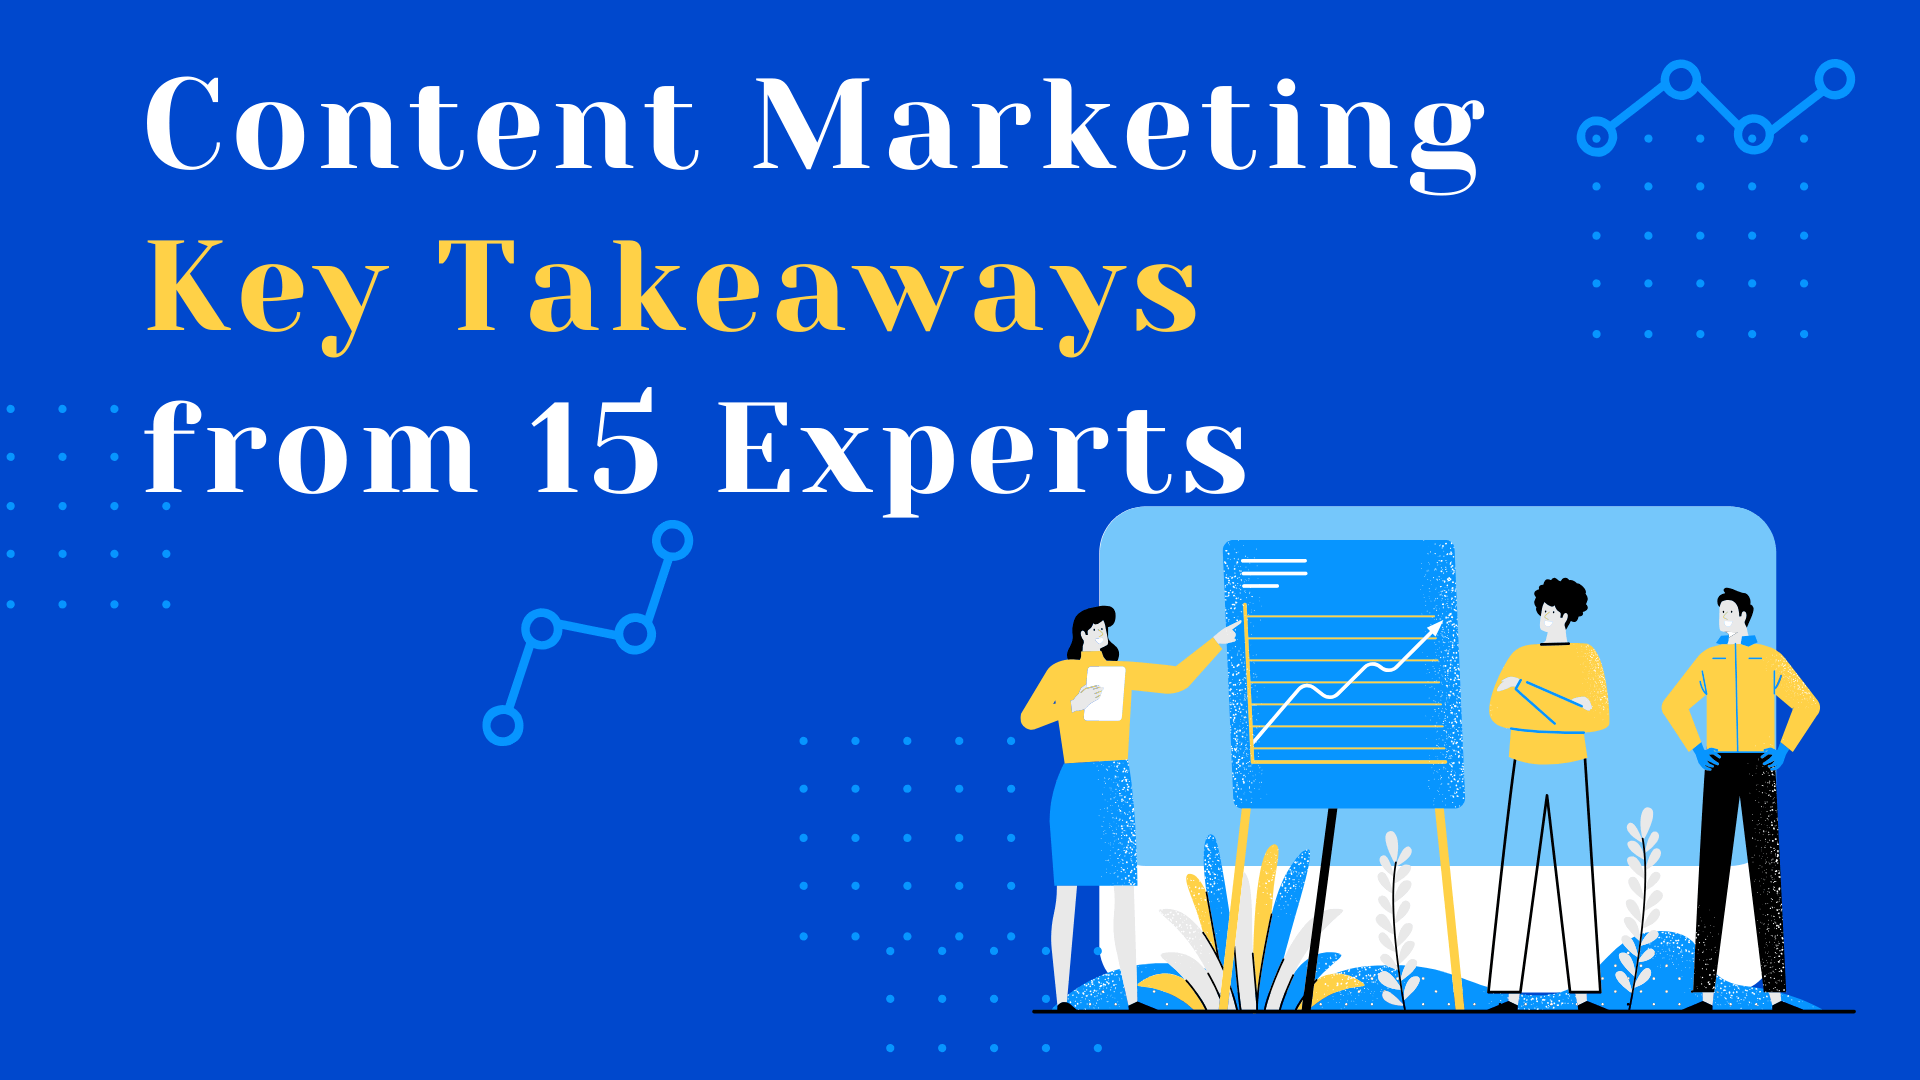 Content Marketing Takeaways - An Expert Roundup